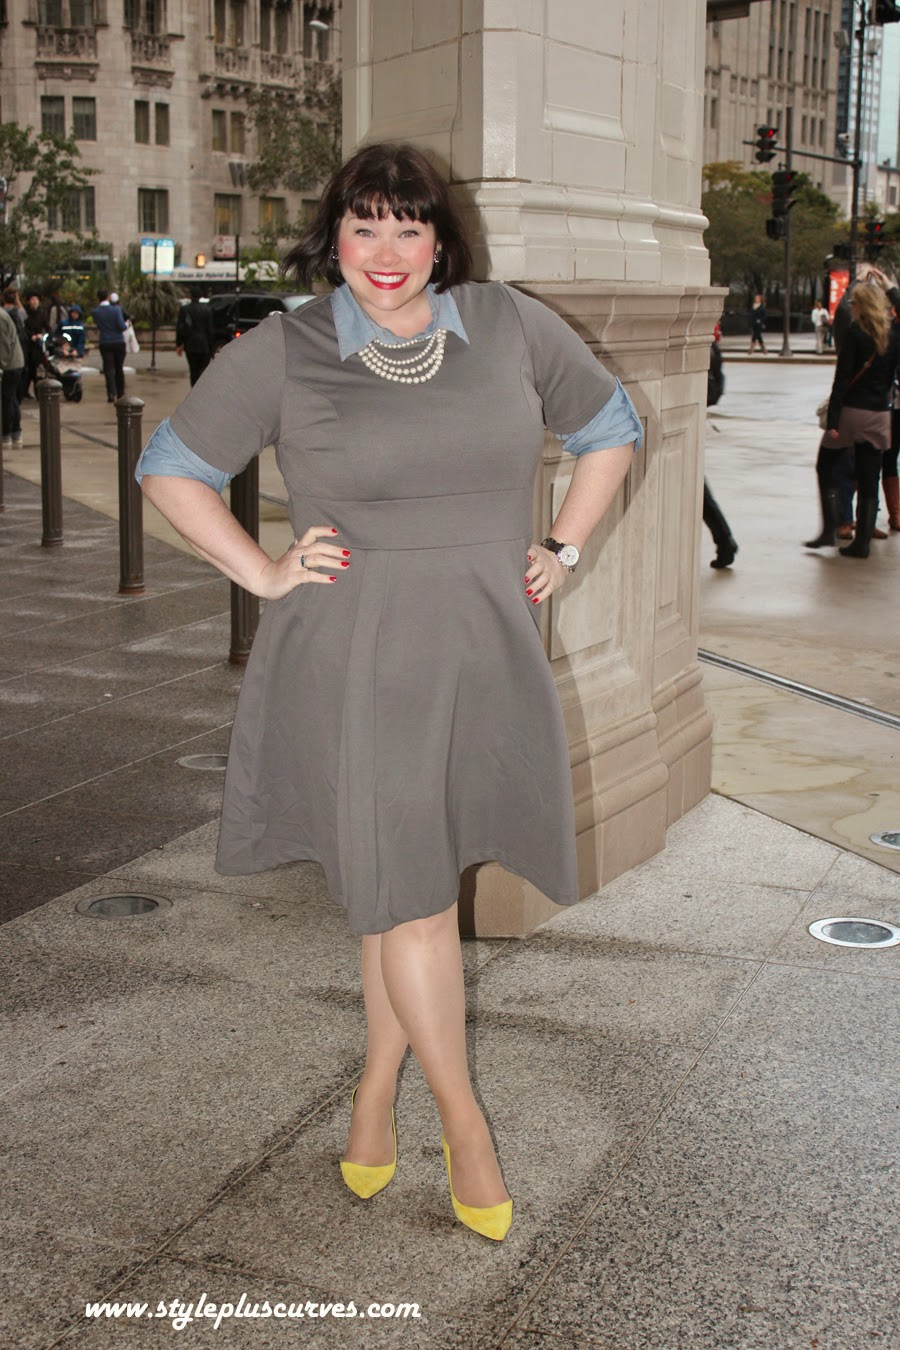 Amber from Style Plus Curves in Jessica London Gray Knit Dress